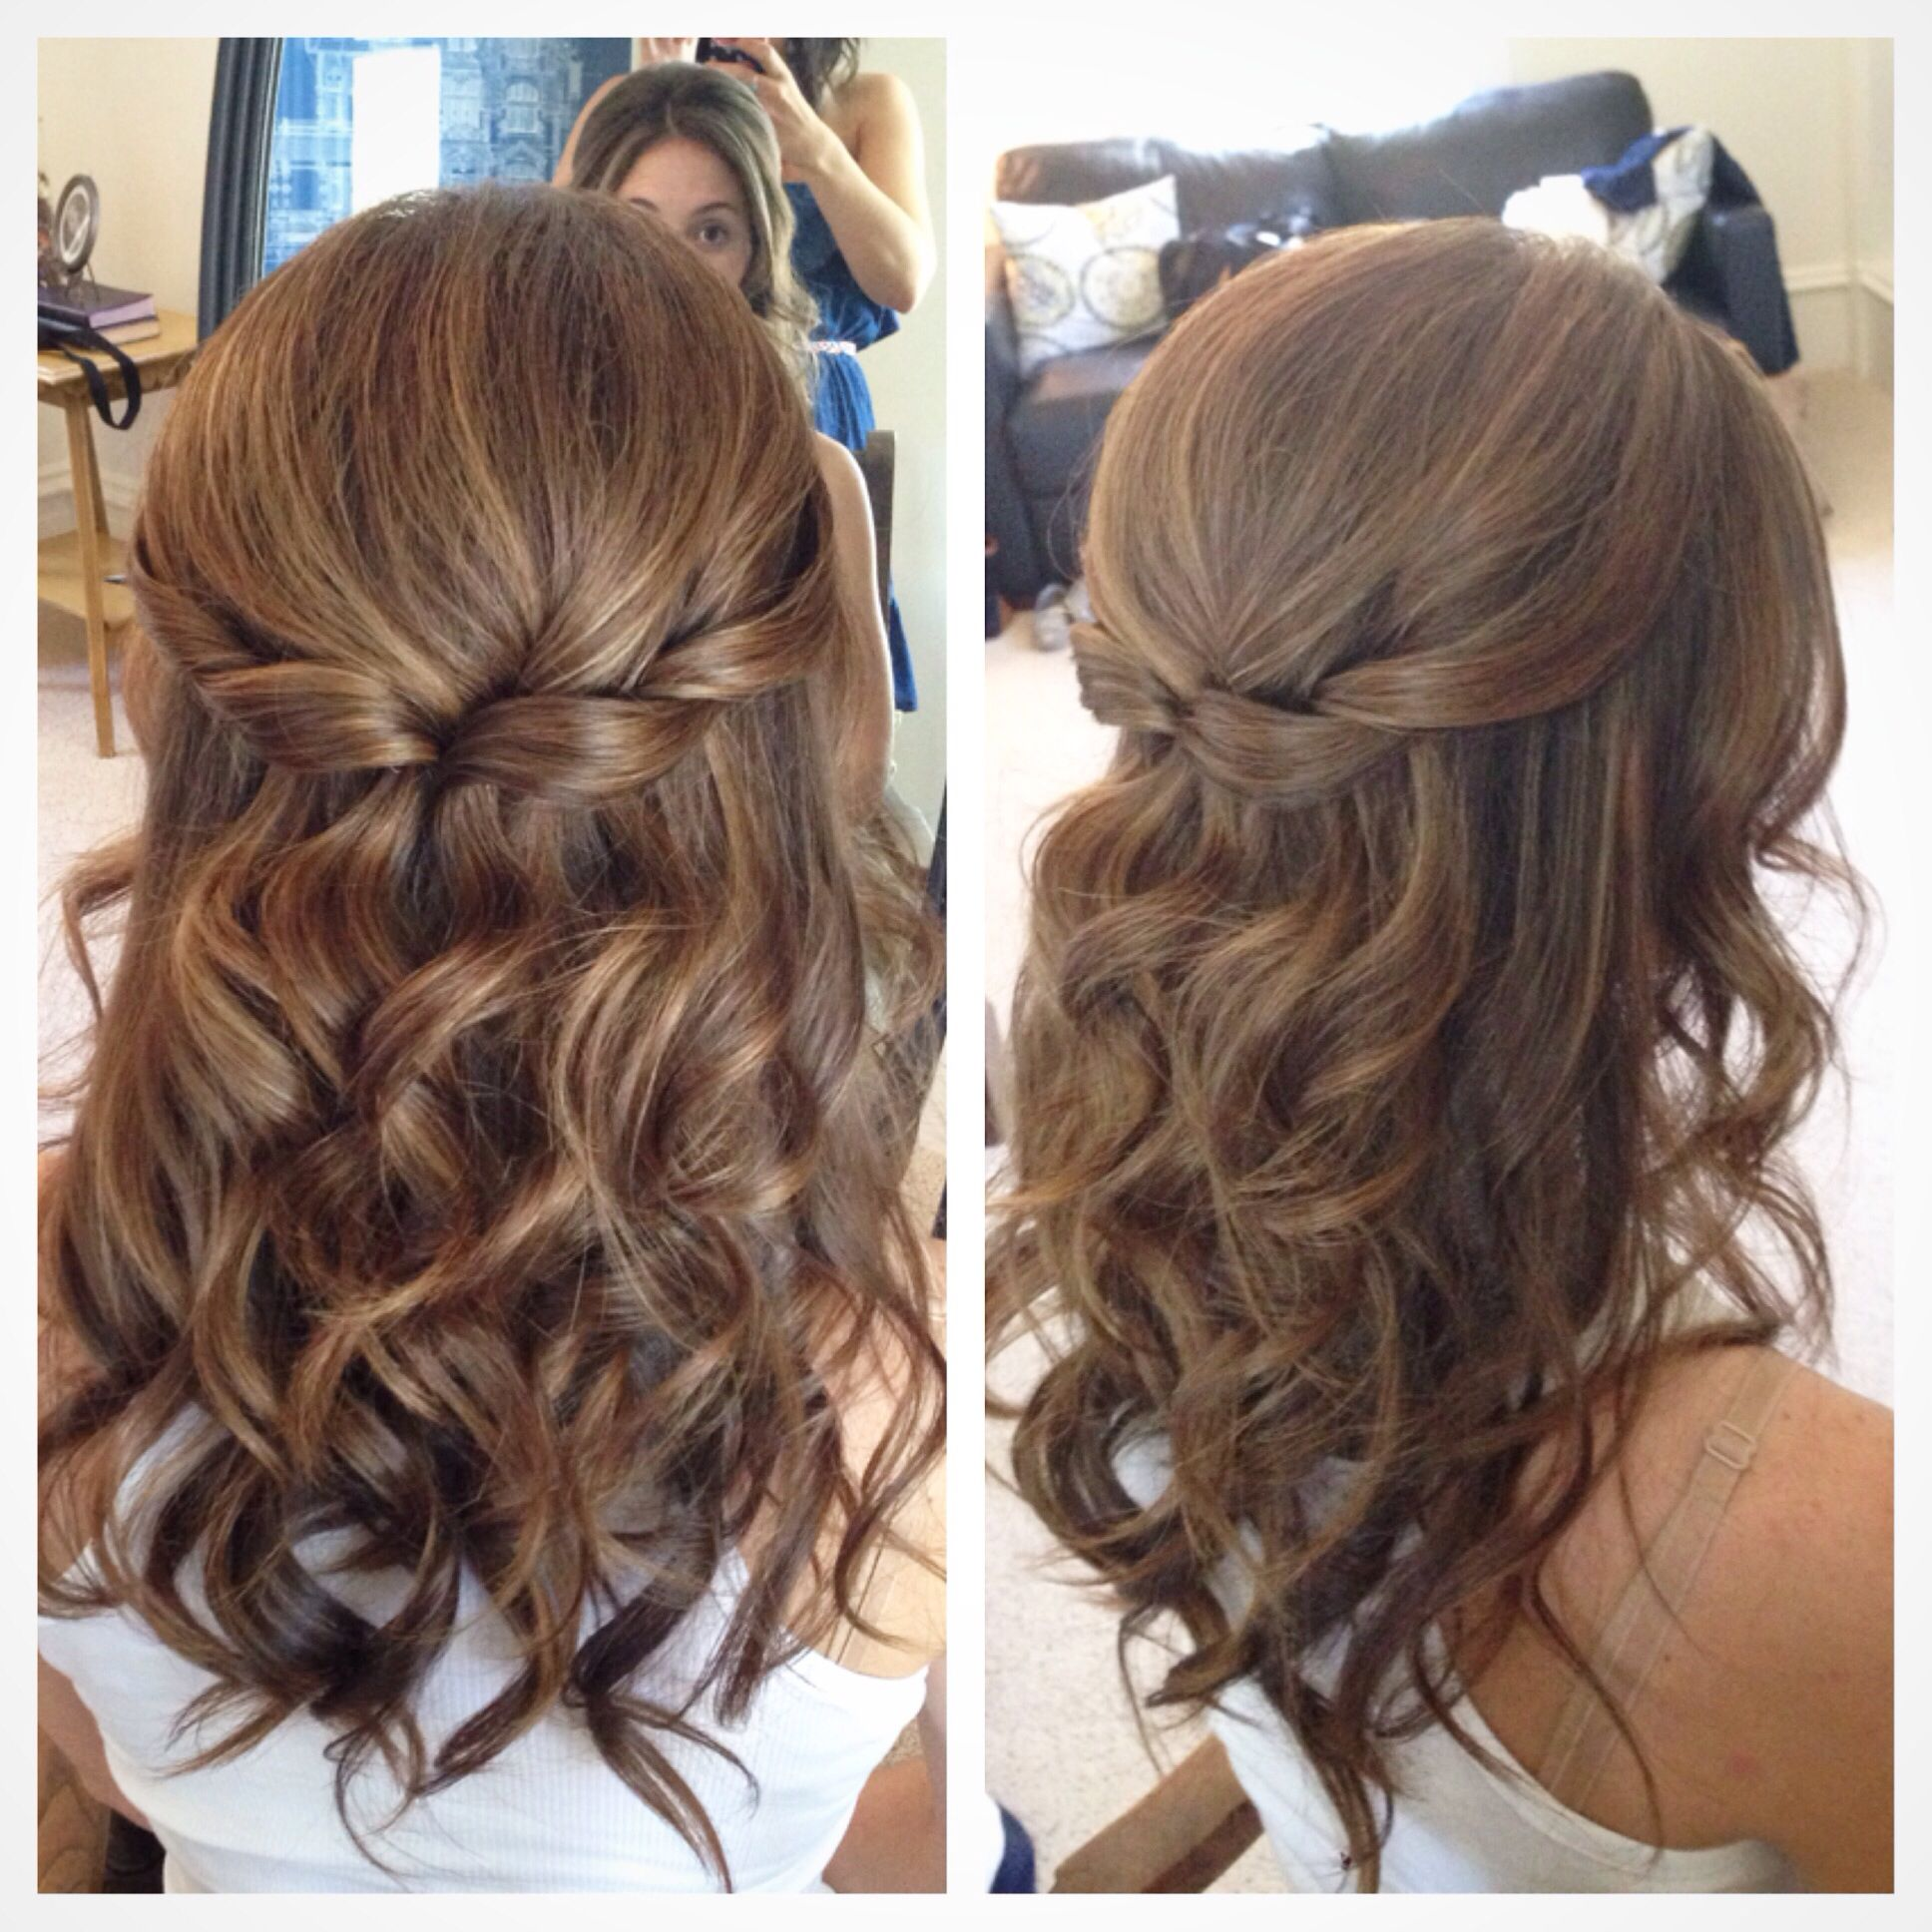 half up half down hair, wedding hair, pretty hair but with softer